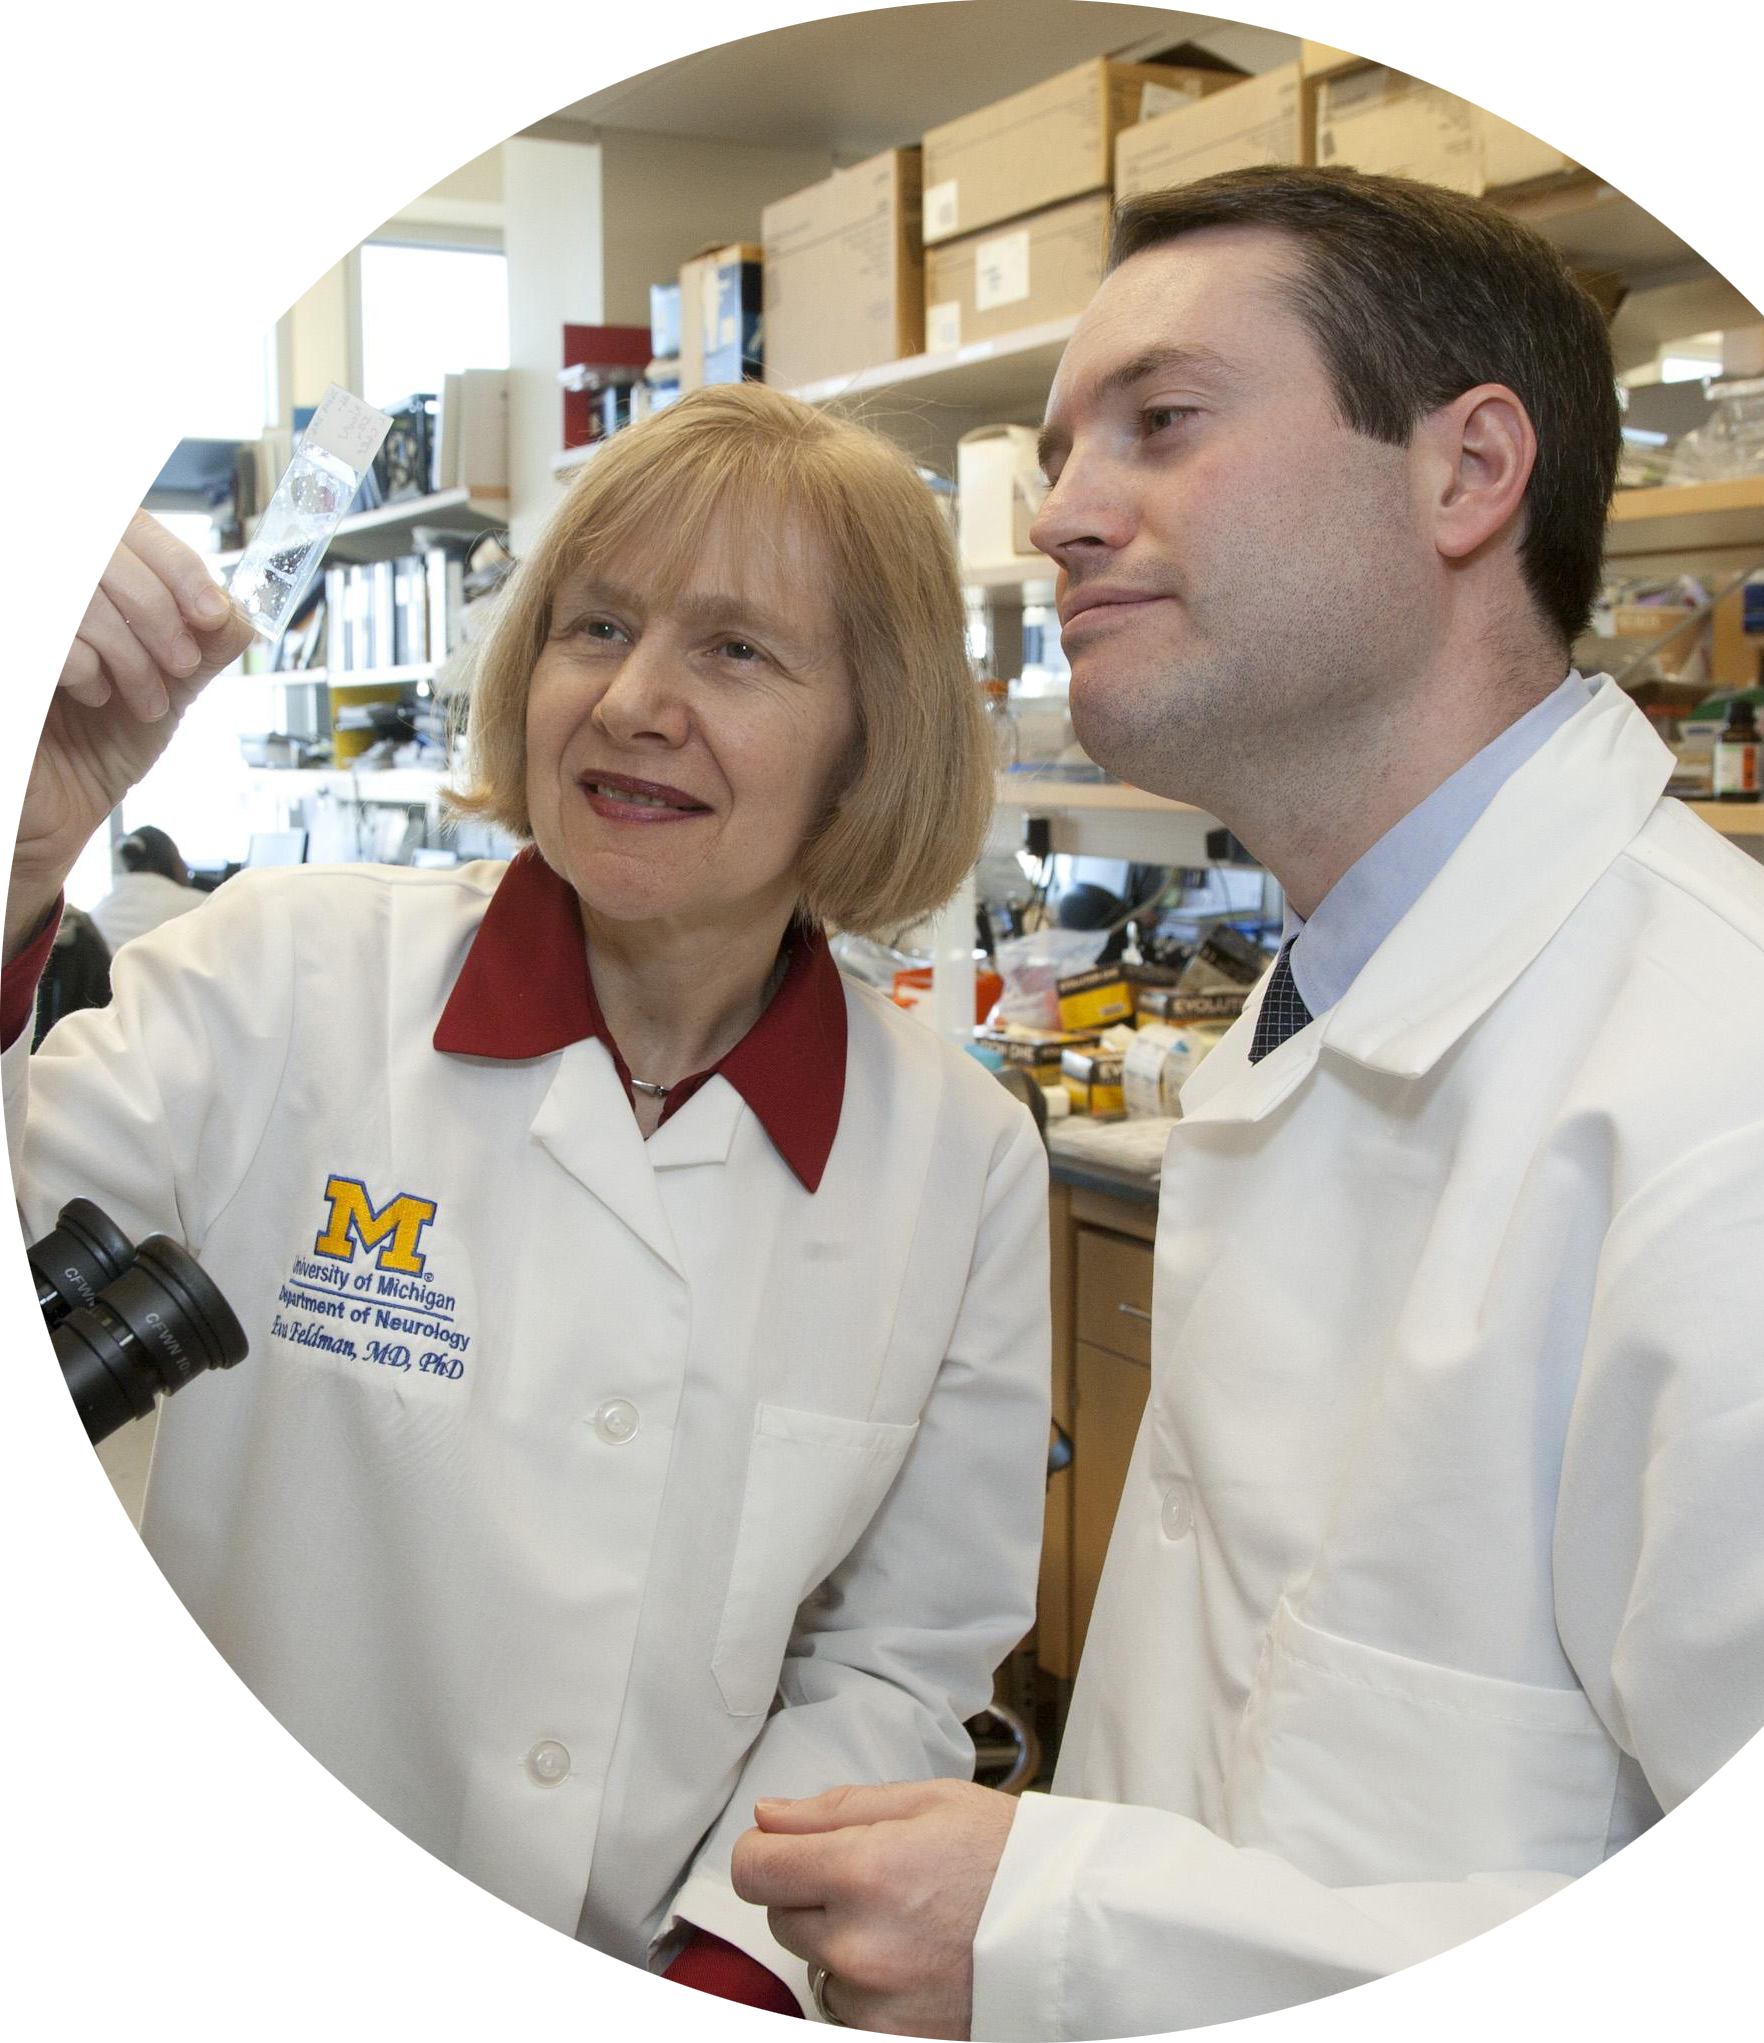 photo of Dr. Eva Feldman and Dr. Brian Callaghan in the NeuroNetwork for Emerging Therapies Lab